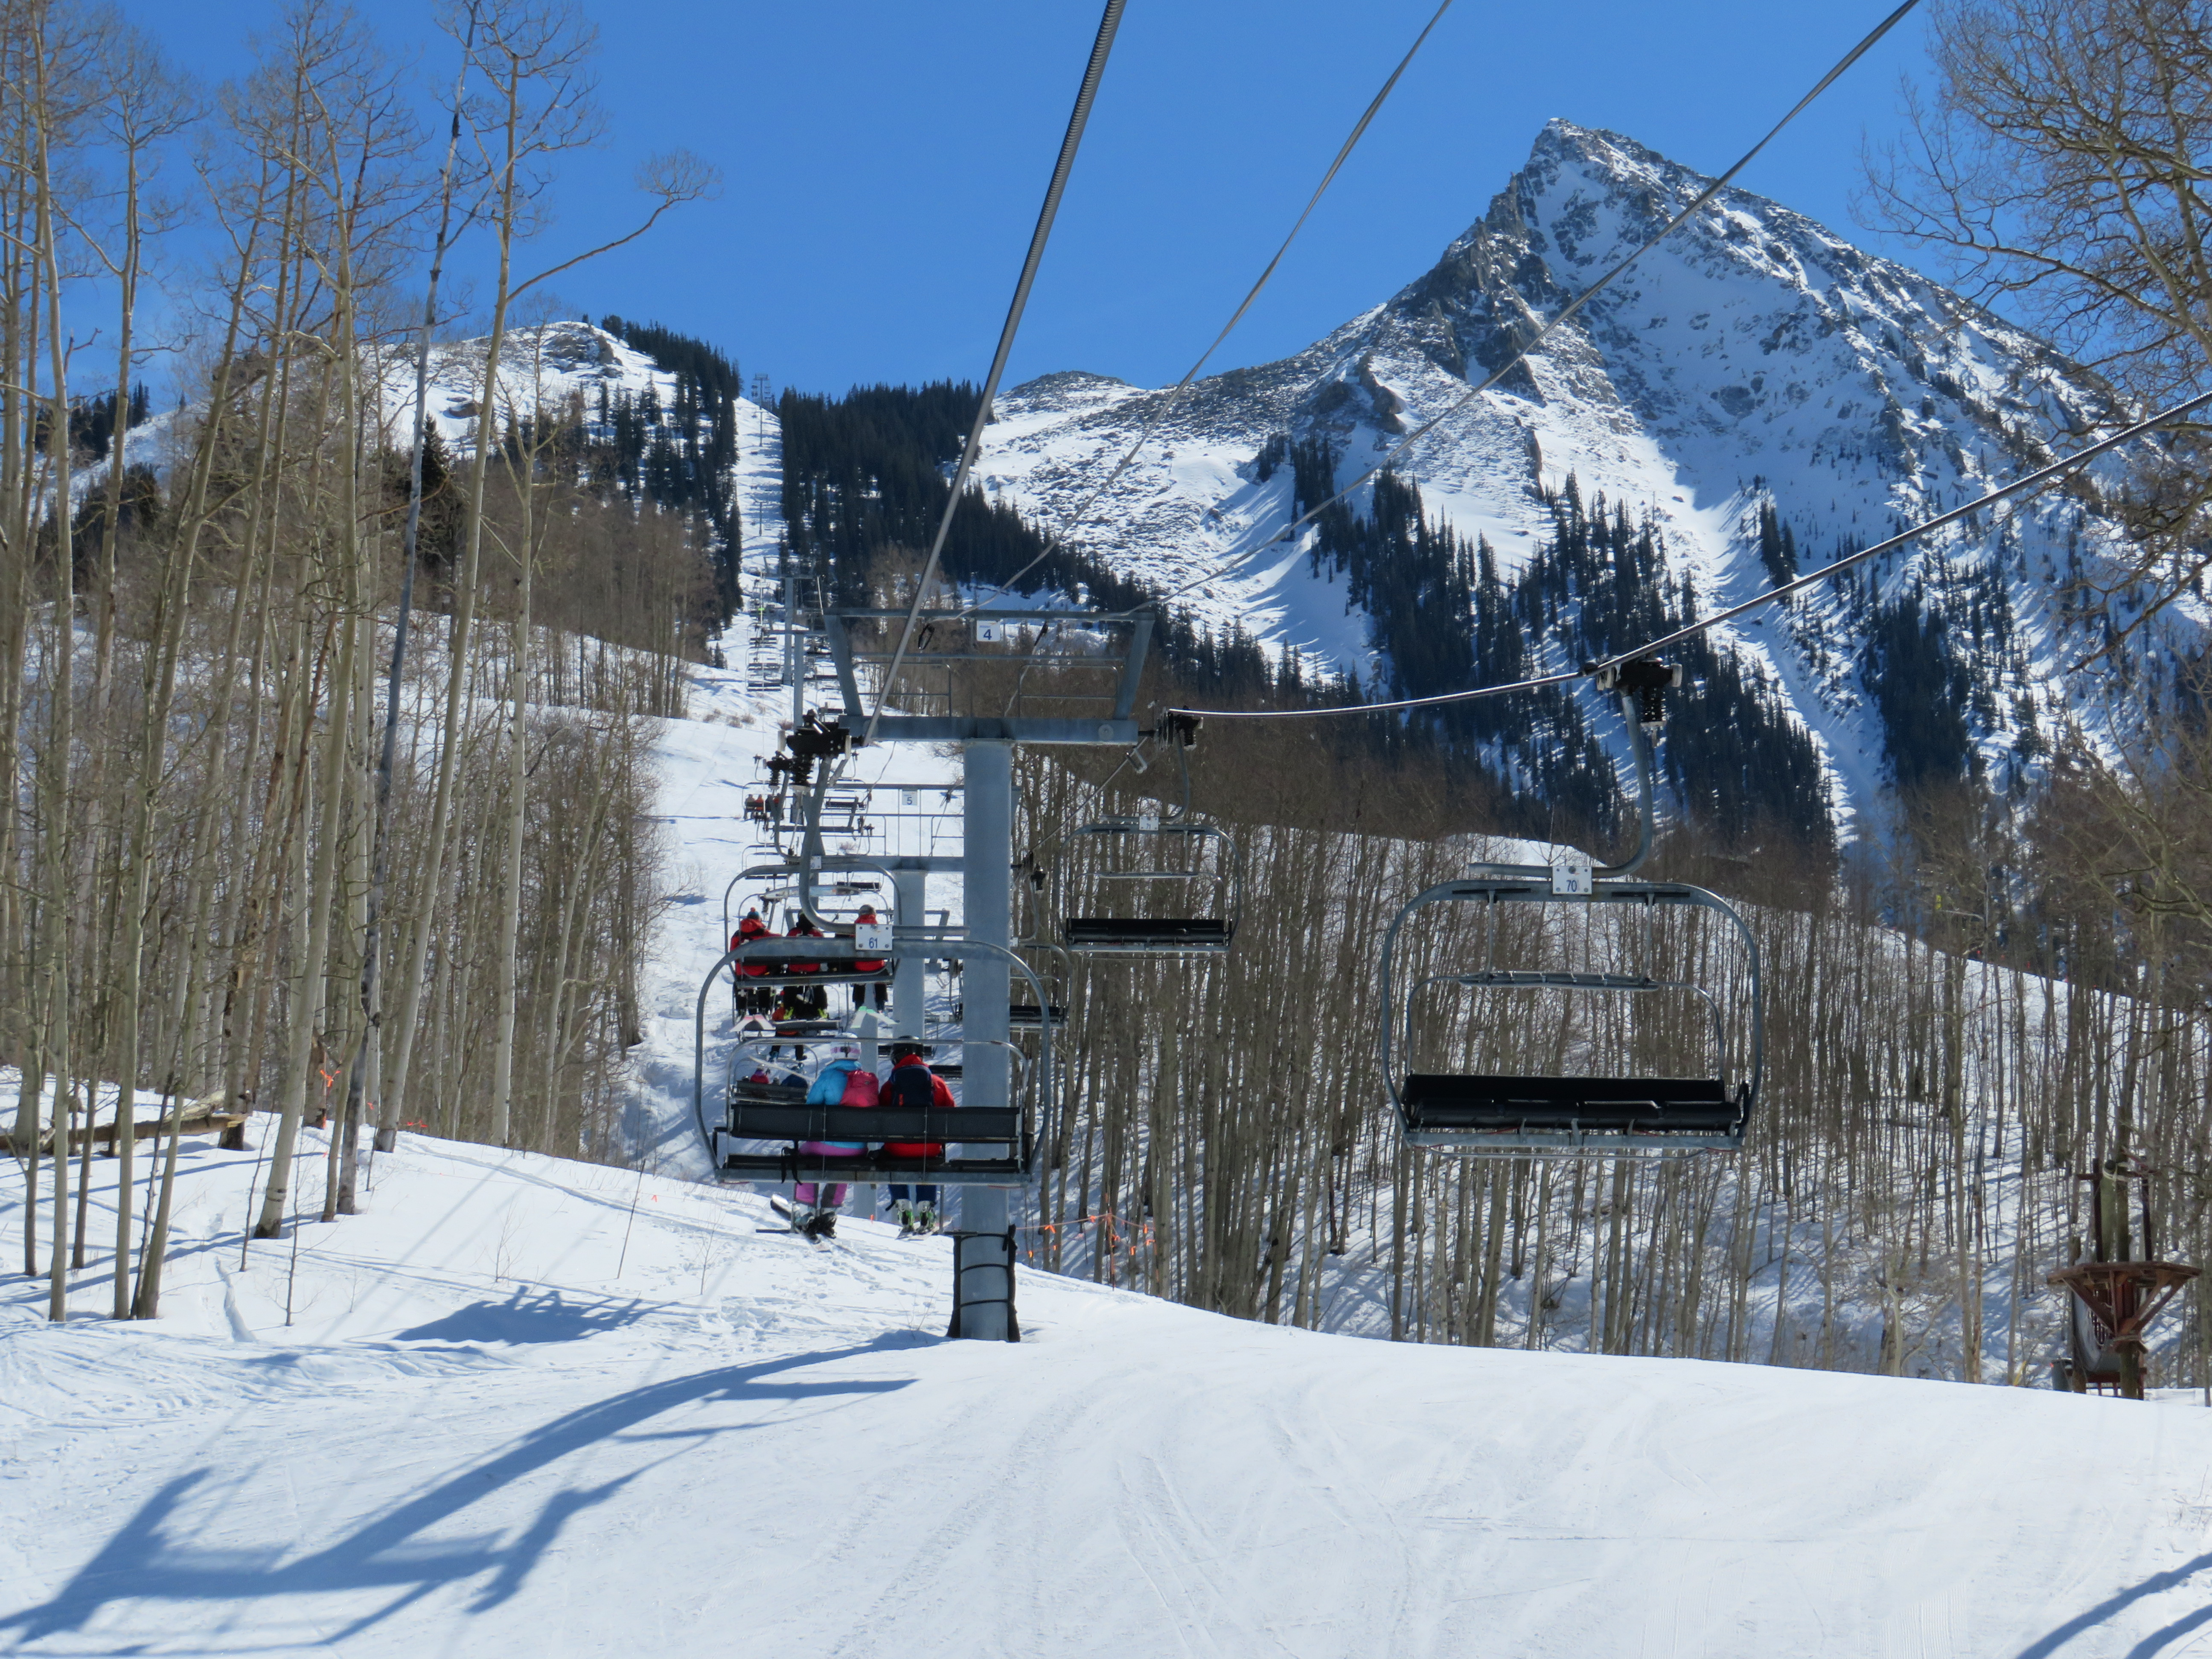 coast to coast! vail resorts buys okemo, crested butte, mt. sunapee